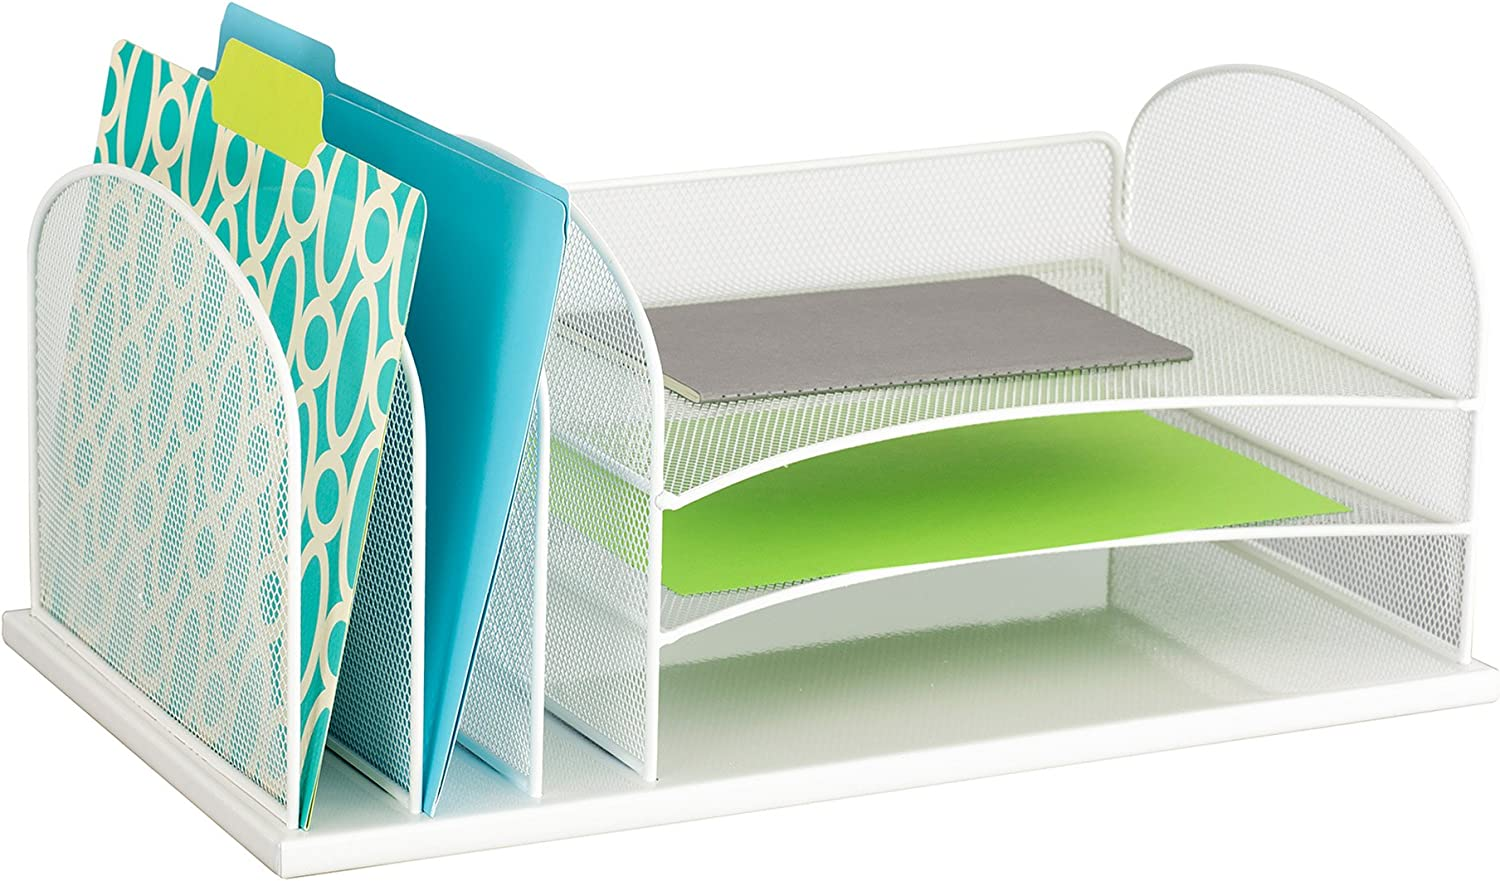 Safco Products Onyx Mesh 3 Sorter/3 Tray Desktop Organizer 3254WH, White Powder Coat Finish, Durable Steel Mesh Construction